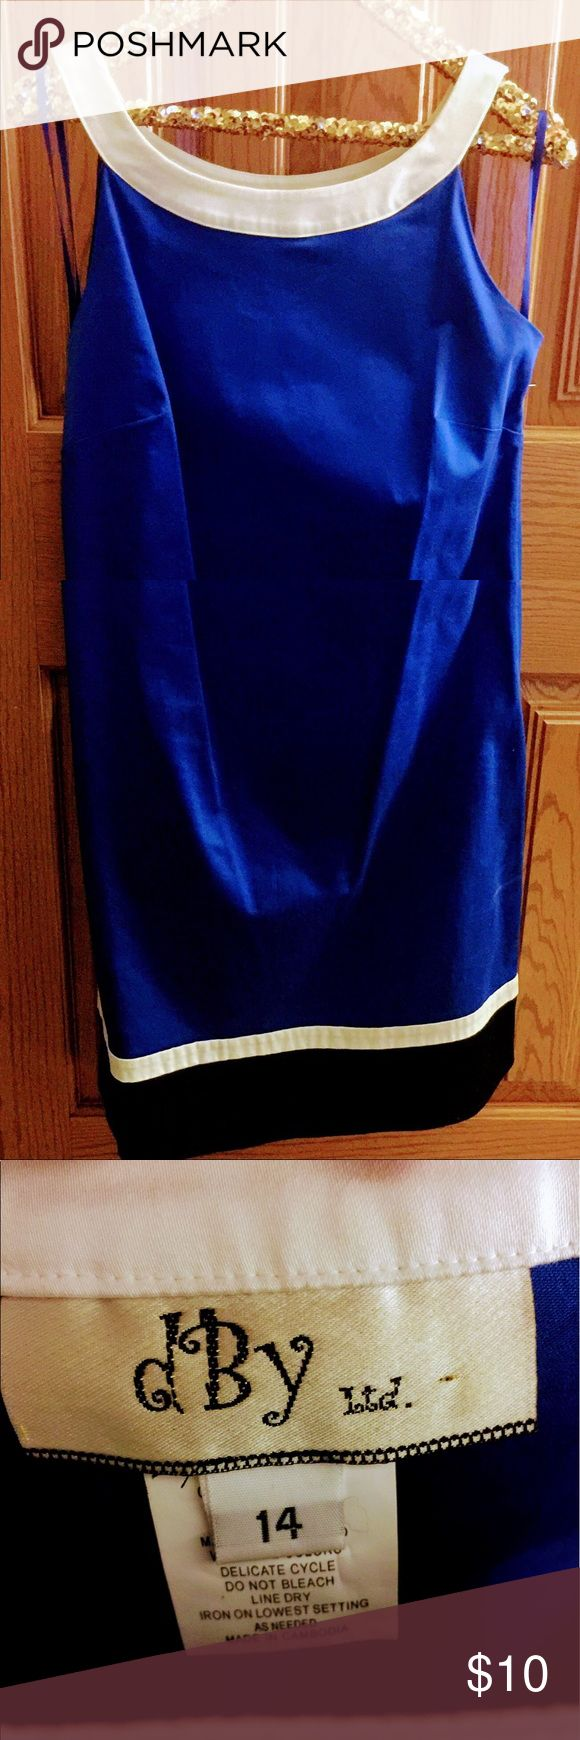 Great Blue Dress👗 Dress it up or Dress it down! Rich blue dress with white straps & a black accent at the bottom. Perfect for the classic woman who maybe wants to try color blocking but is hesitant about going all out! Looks great with black heels 👠 & a black jacket or with a cute pair of sandals or wedges! 97% cotton makes it comfortable & breathable for the summer months ☀️ Size 14 / Comes to right above the knee / Side zipper / EUC Dresses